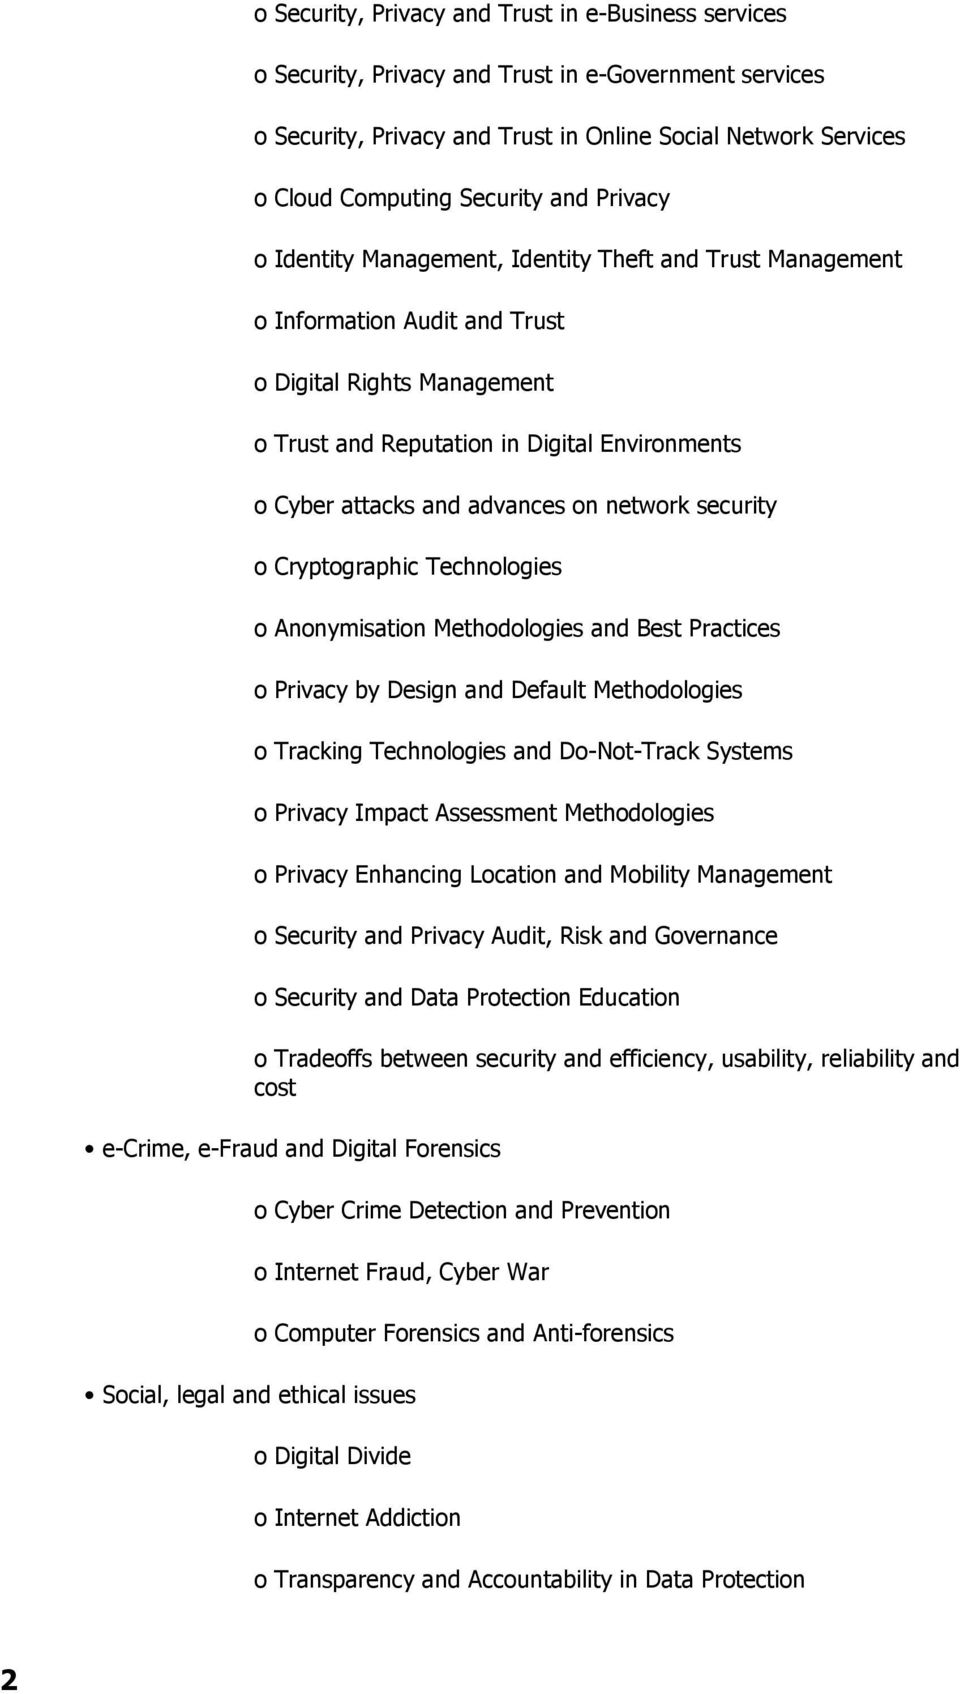 advances on network security o Cryptographic Technologies o Anonymisation Methodologies and Best Practices o Privacy by Design and Default Methodologies o Tracking Technologies and Do-Not-Track